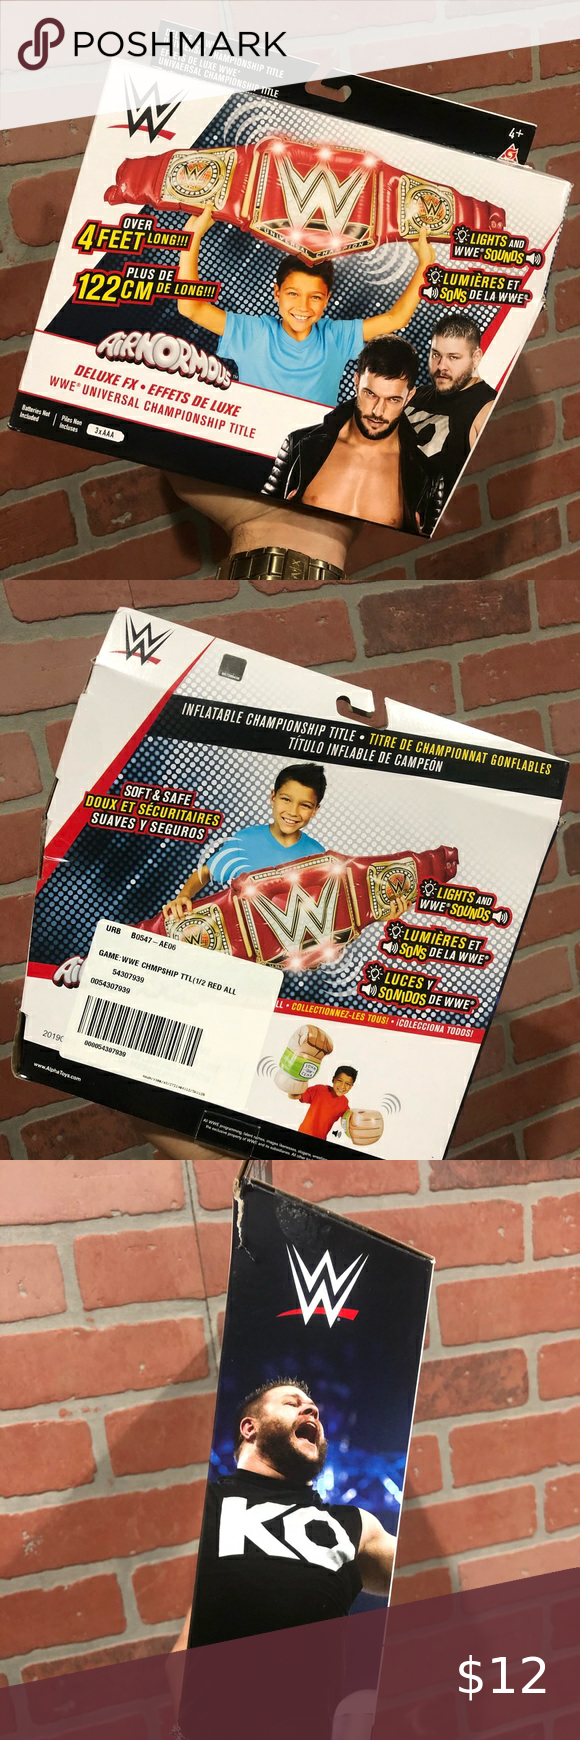 Airnormous Deluxe Wwe Championship Title Belt Wwe Wwe Toys Belt